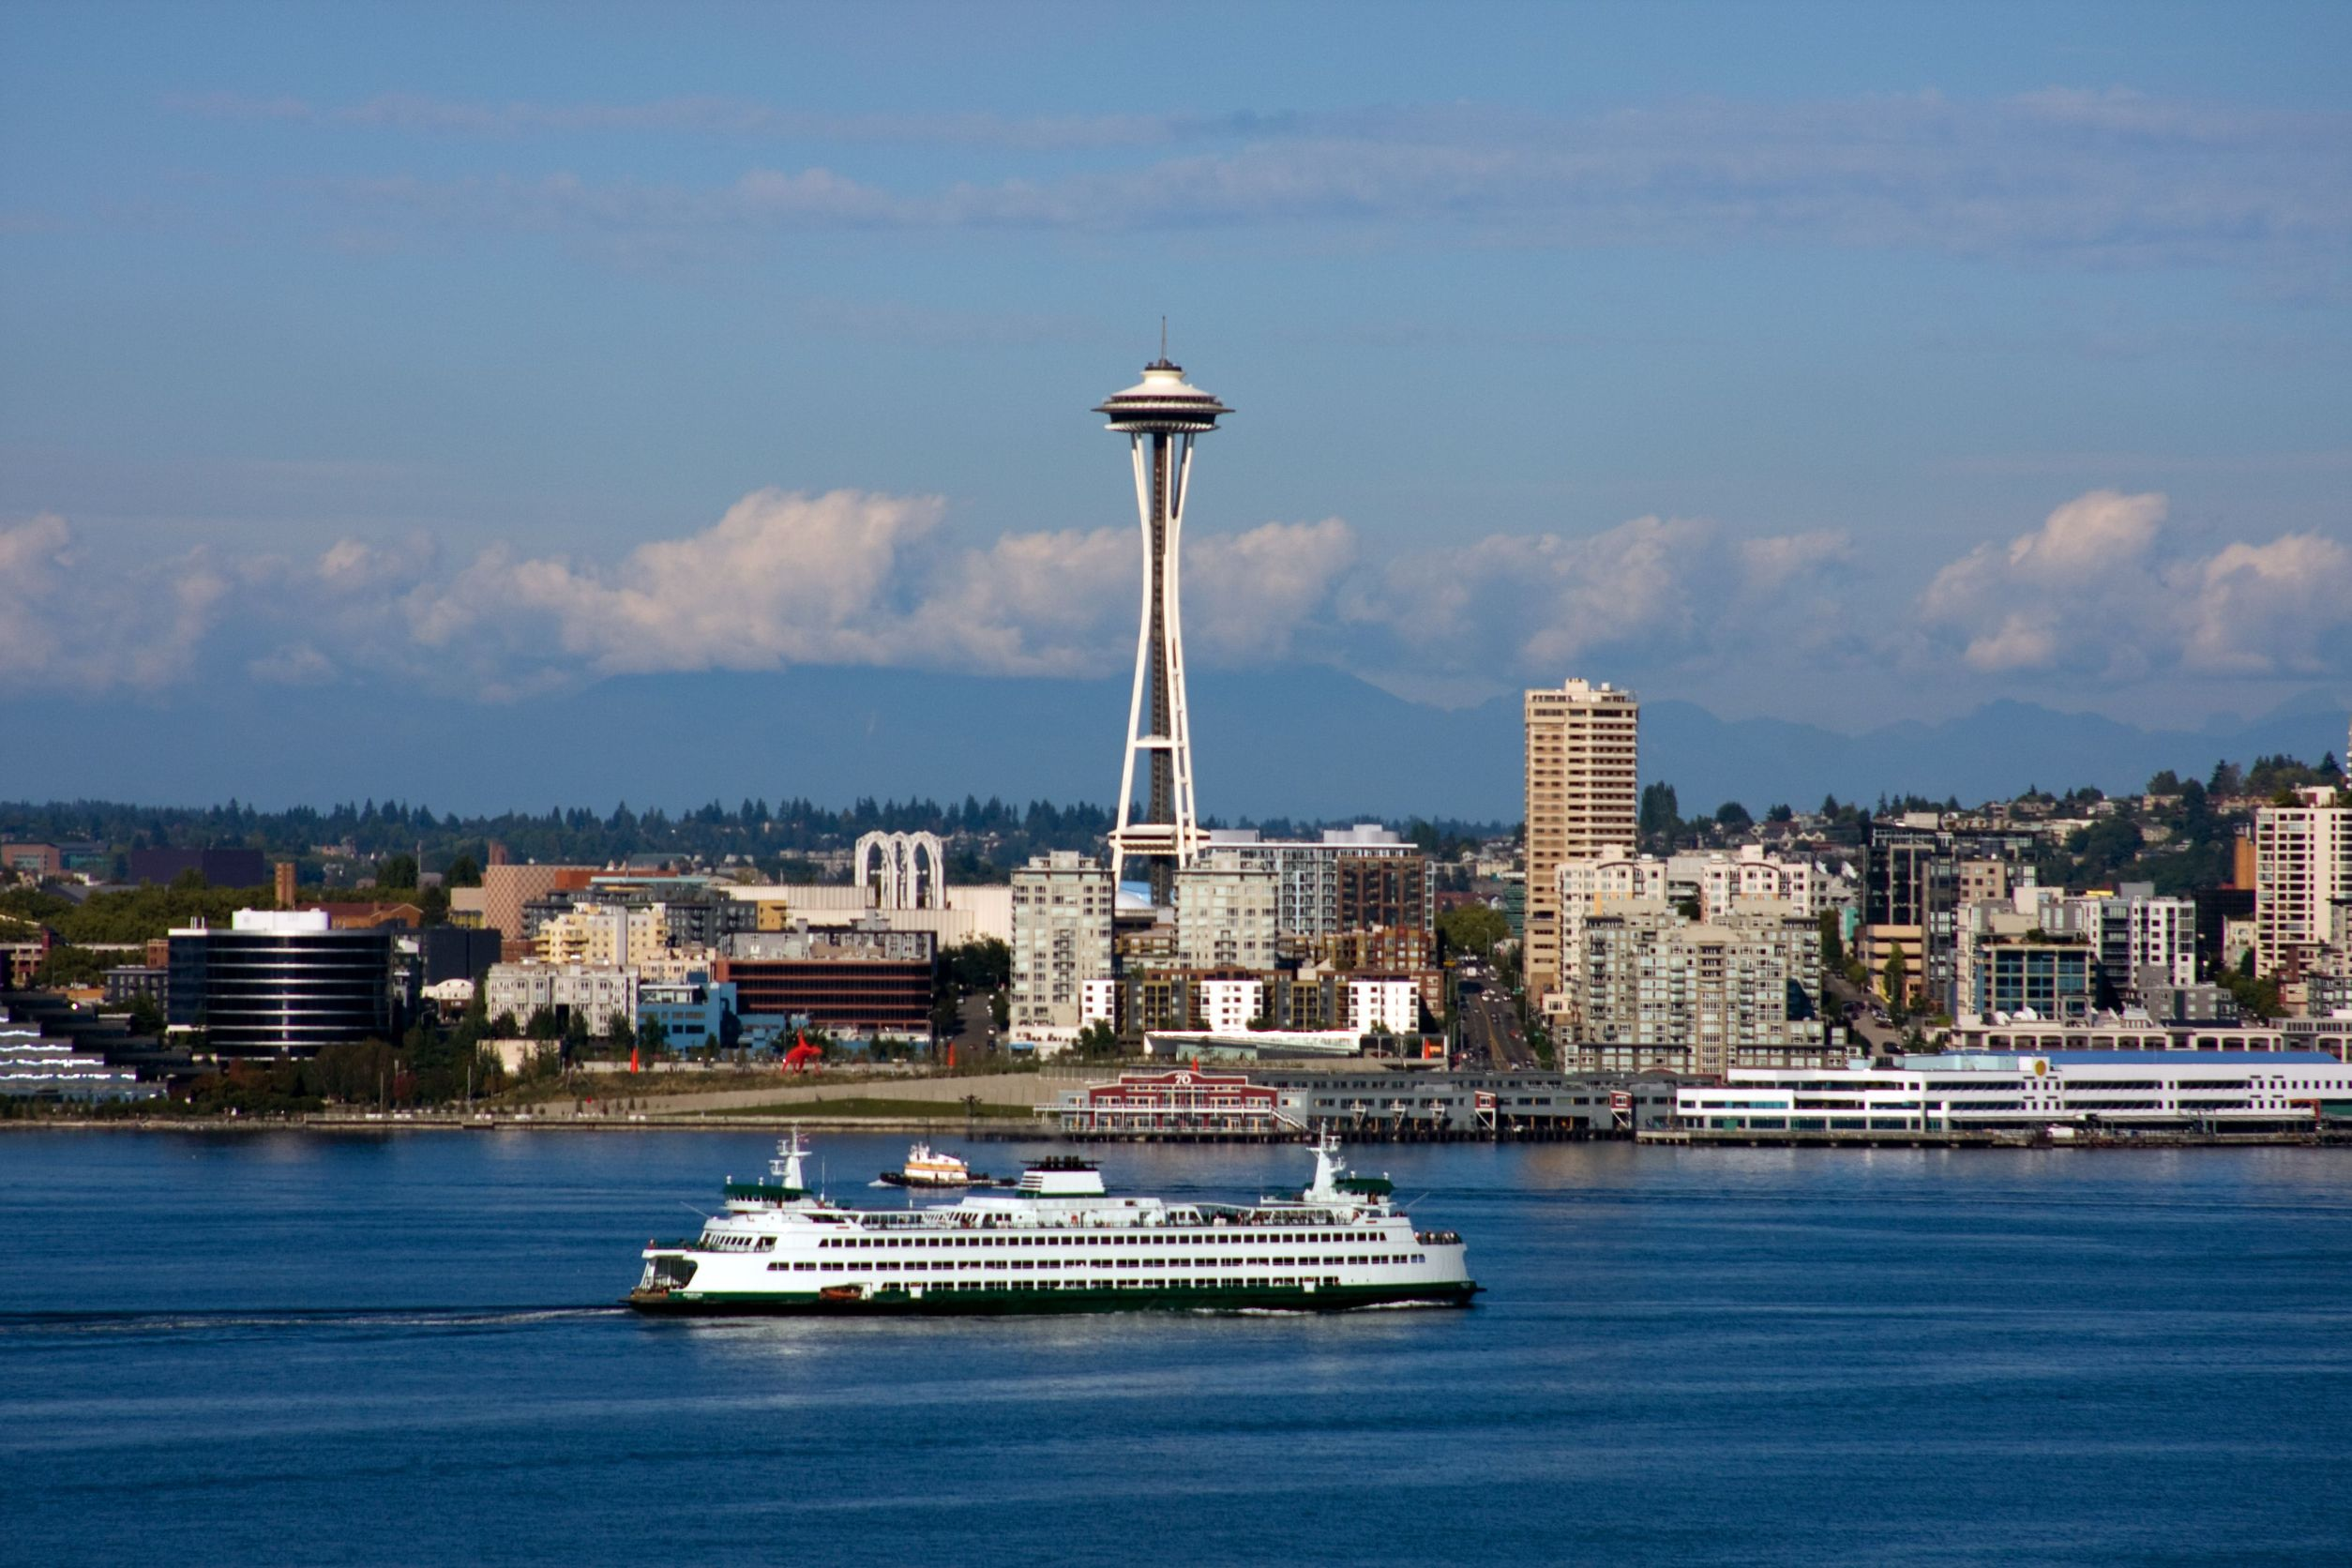 Seattle Wa Cruise Ship Injury Lawyer Lwm Legal